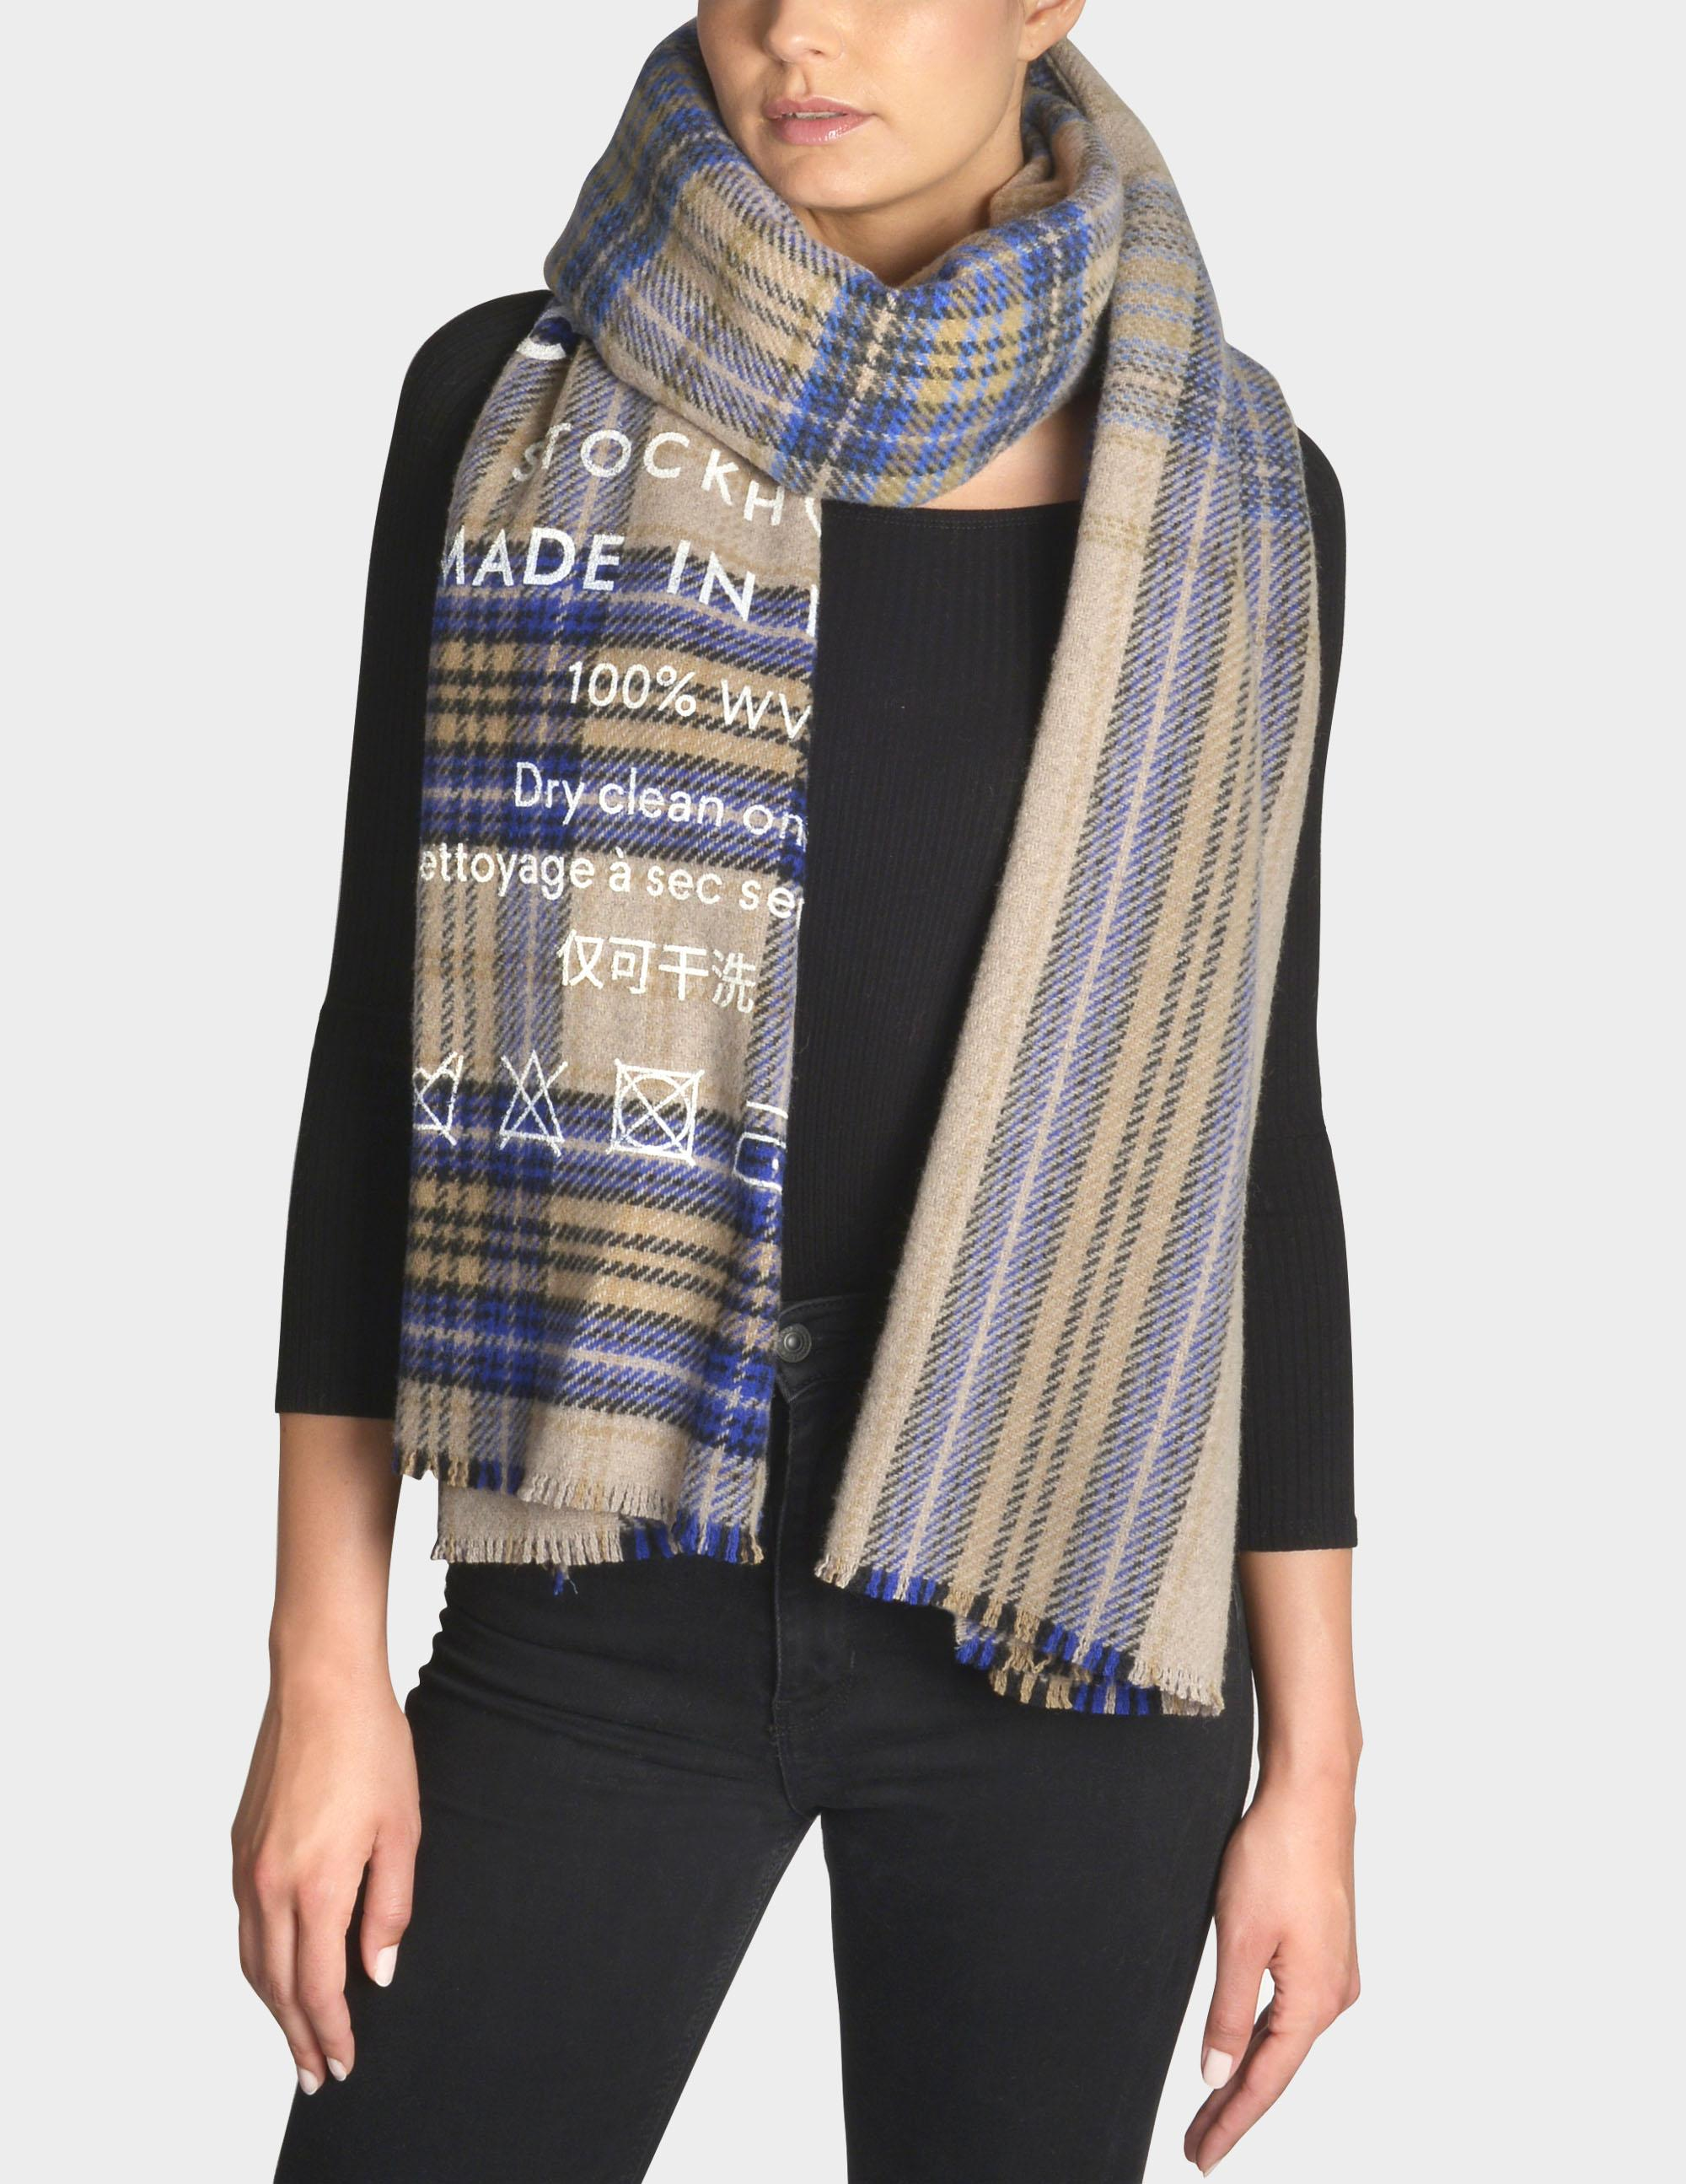 83b169255a4 Acne Studios Cassiar Check Scarf In Blue And Beige Squares Wool ...